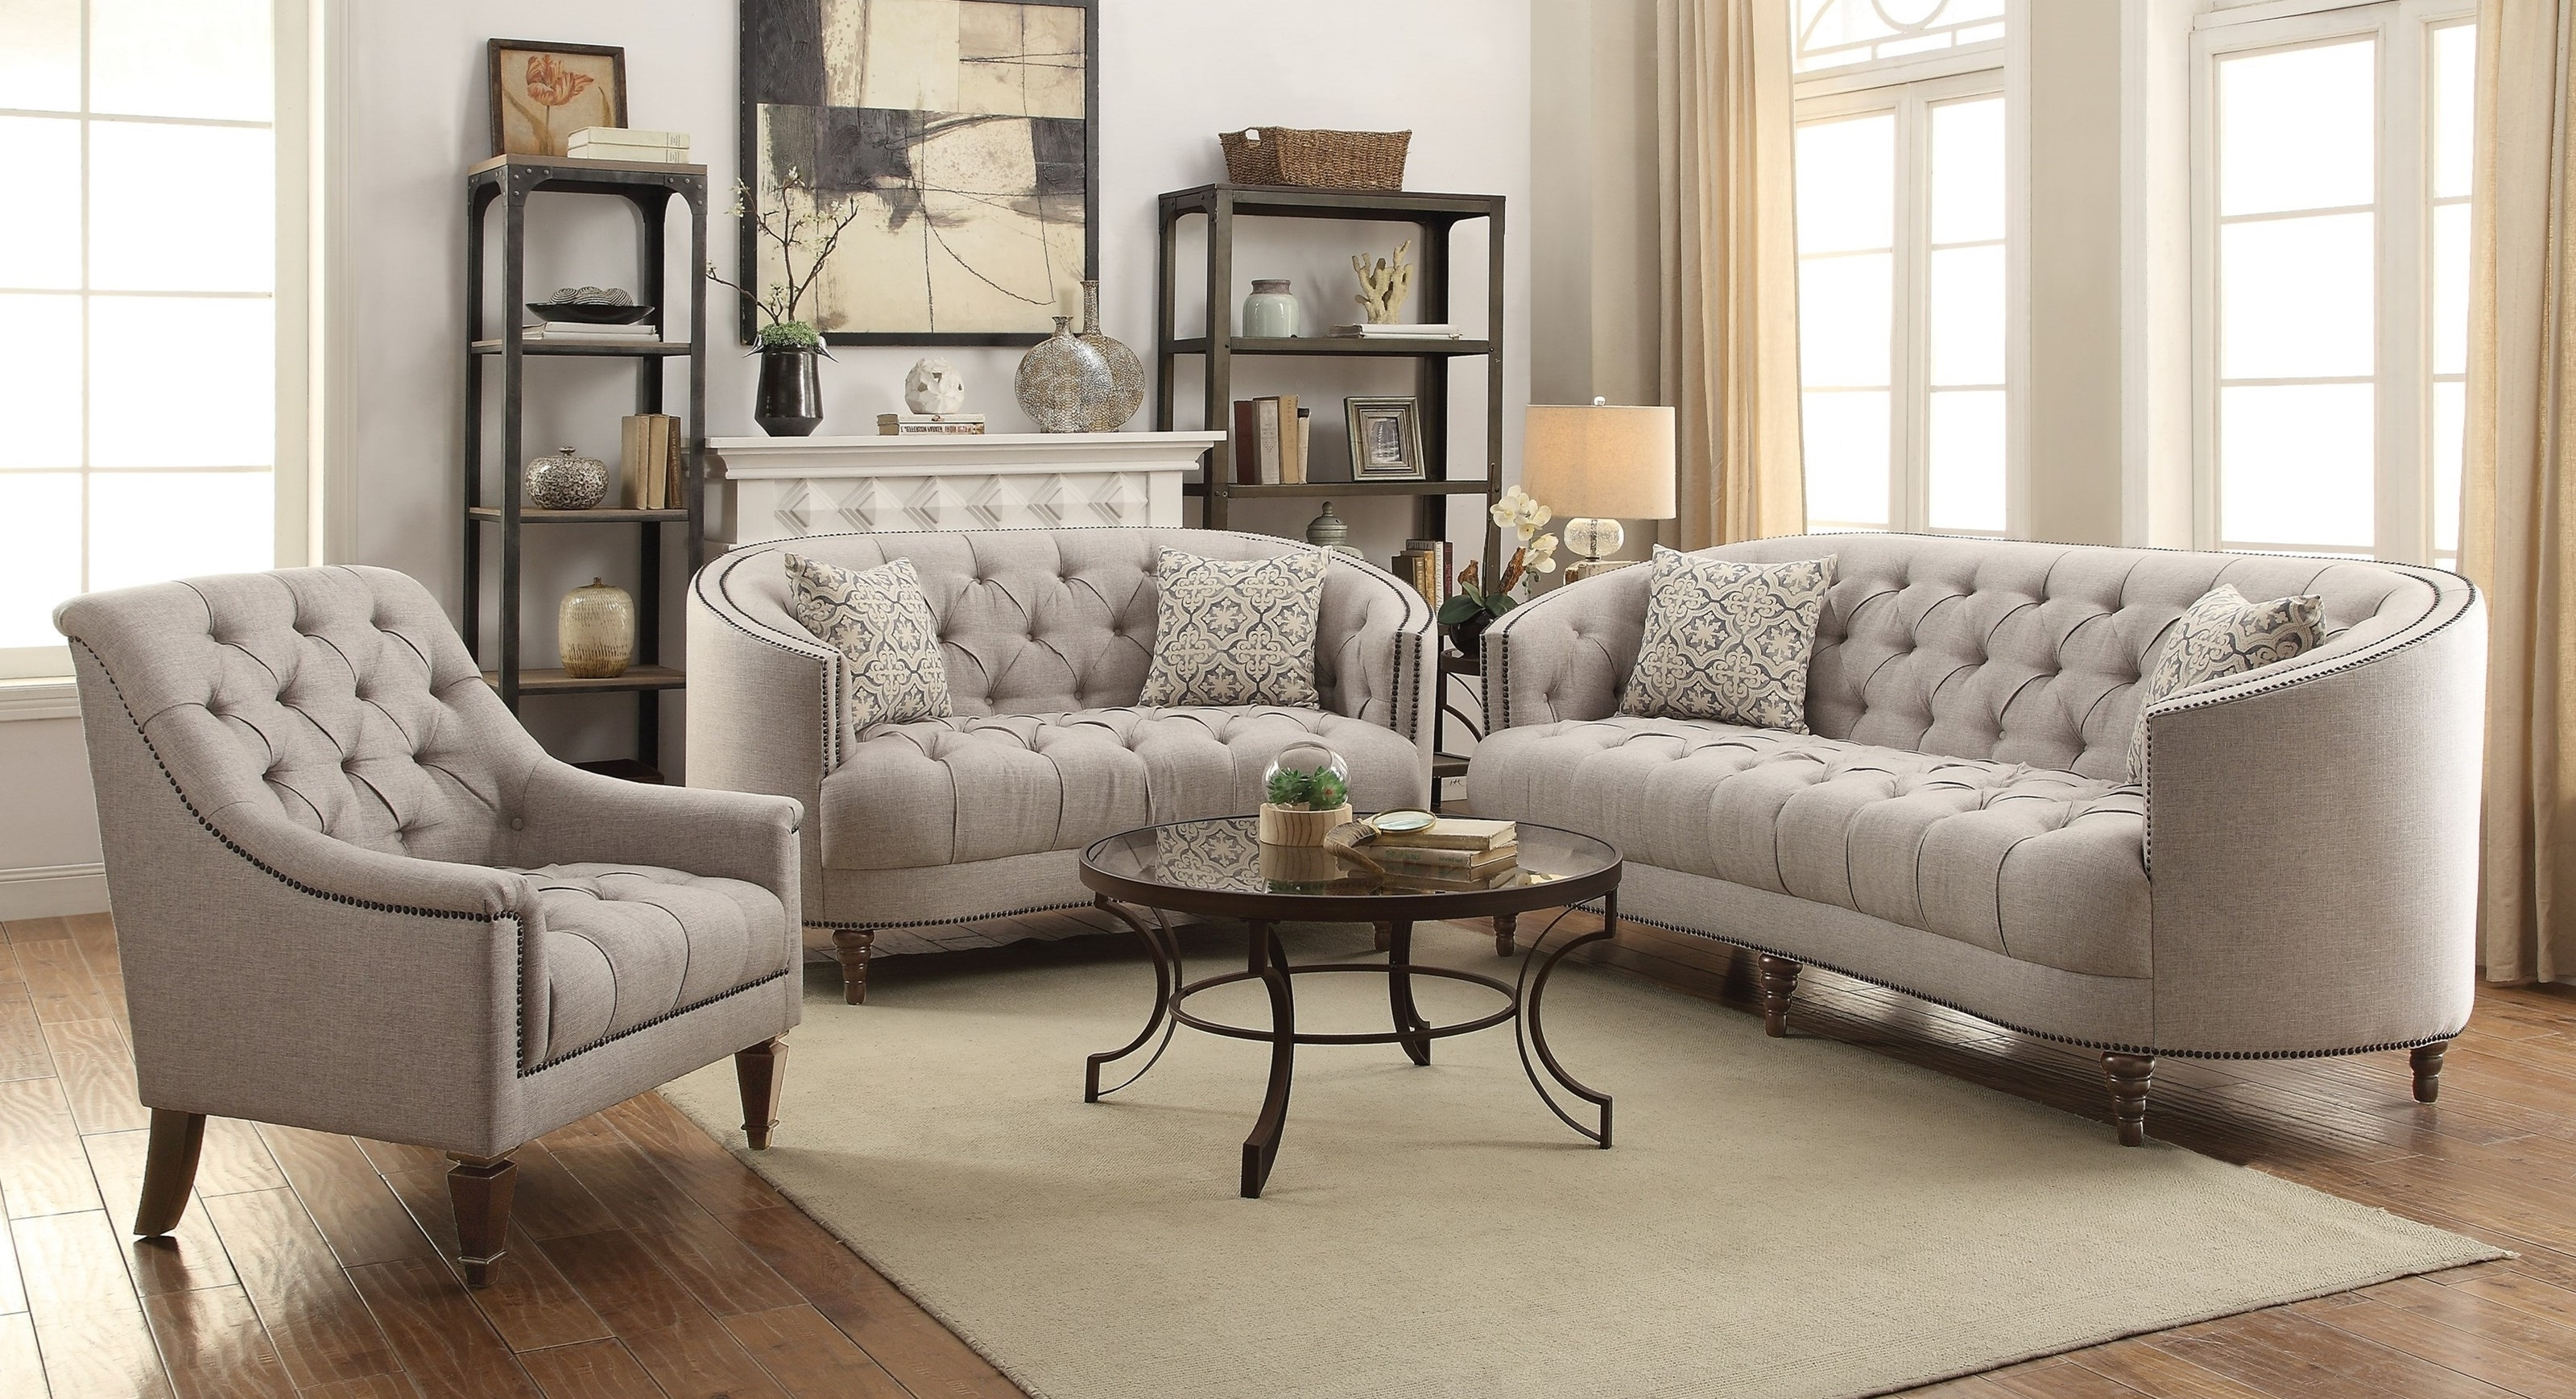 Well Liked Avonlea Sofa And Chair Set – 505641 With Regard To C Shaped Sofas (View 15 of 15)